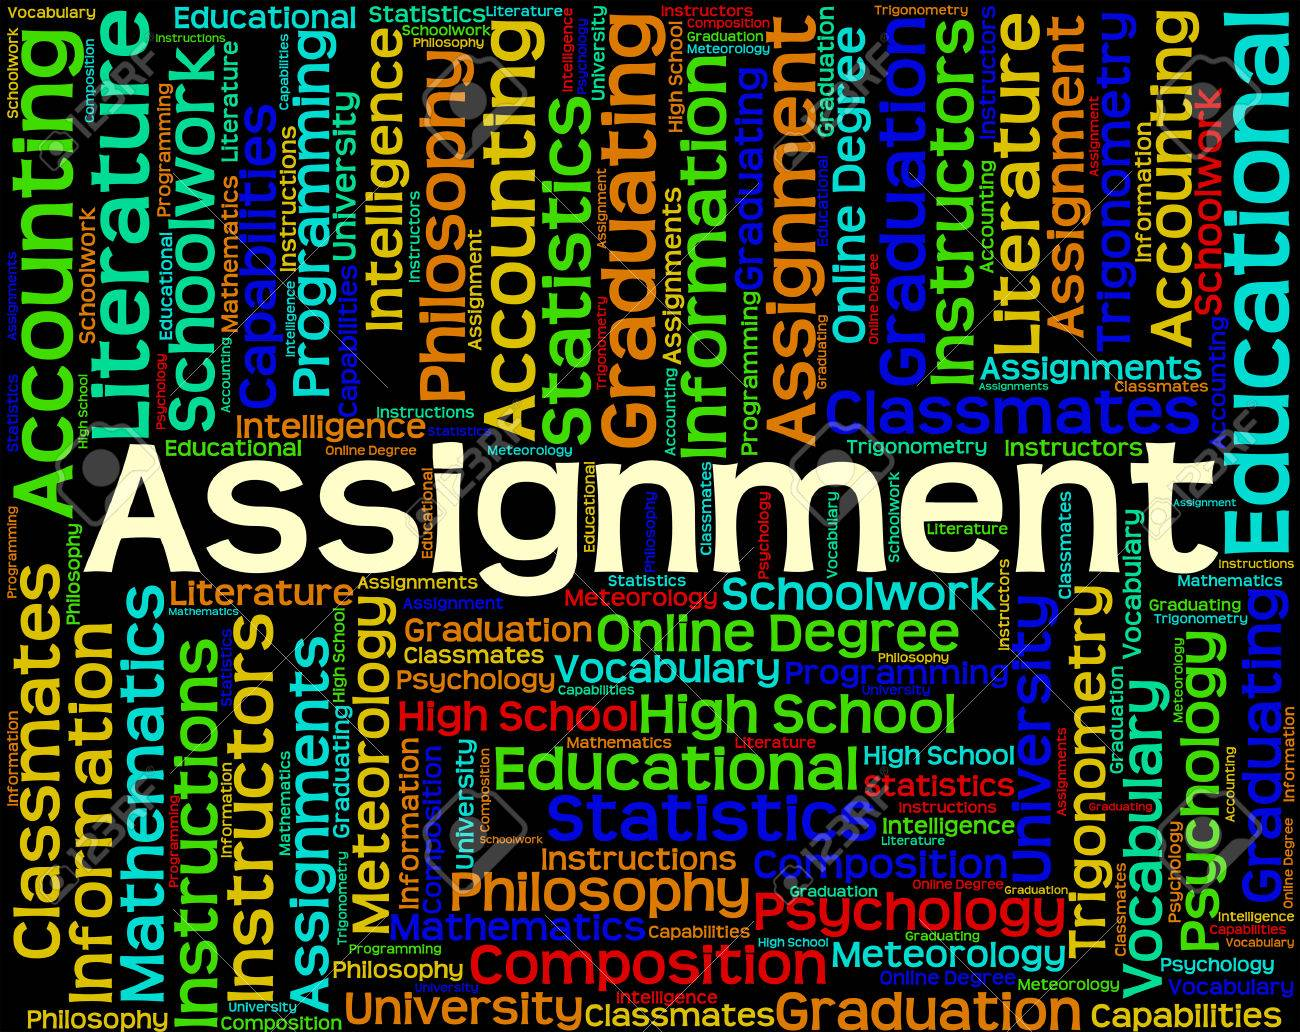 assignment word meaning school work and homework stock photo assignment word meaning school work and homework stock photo 43804309